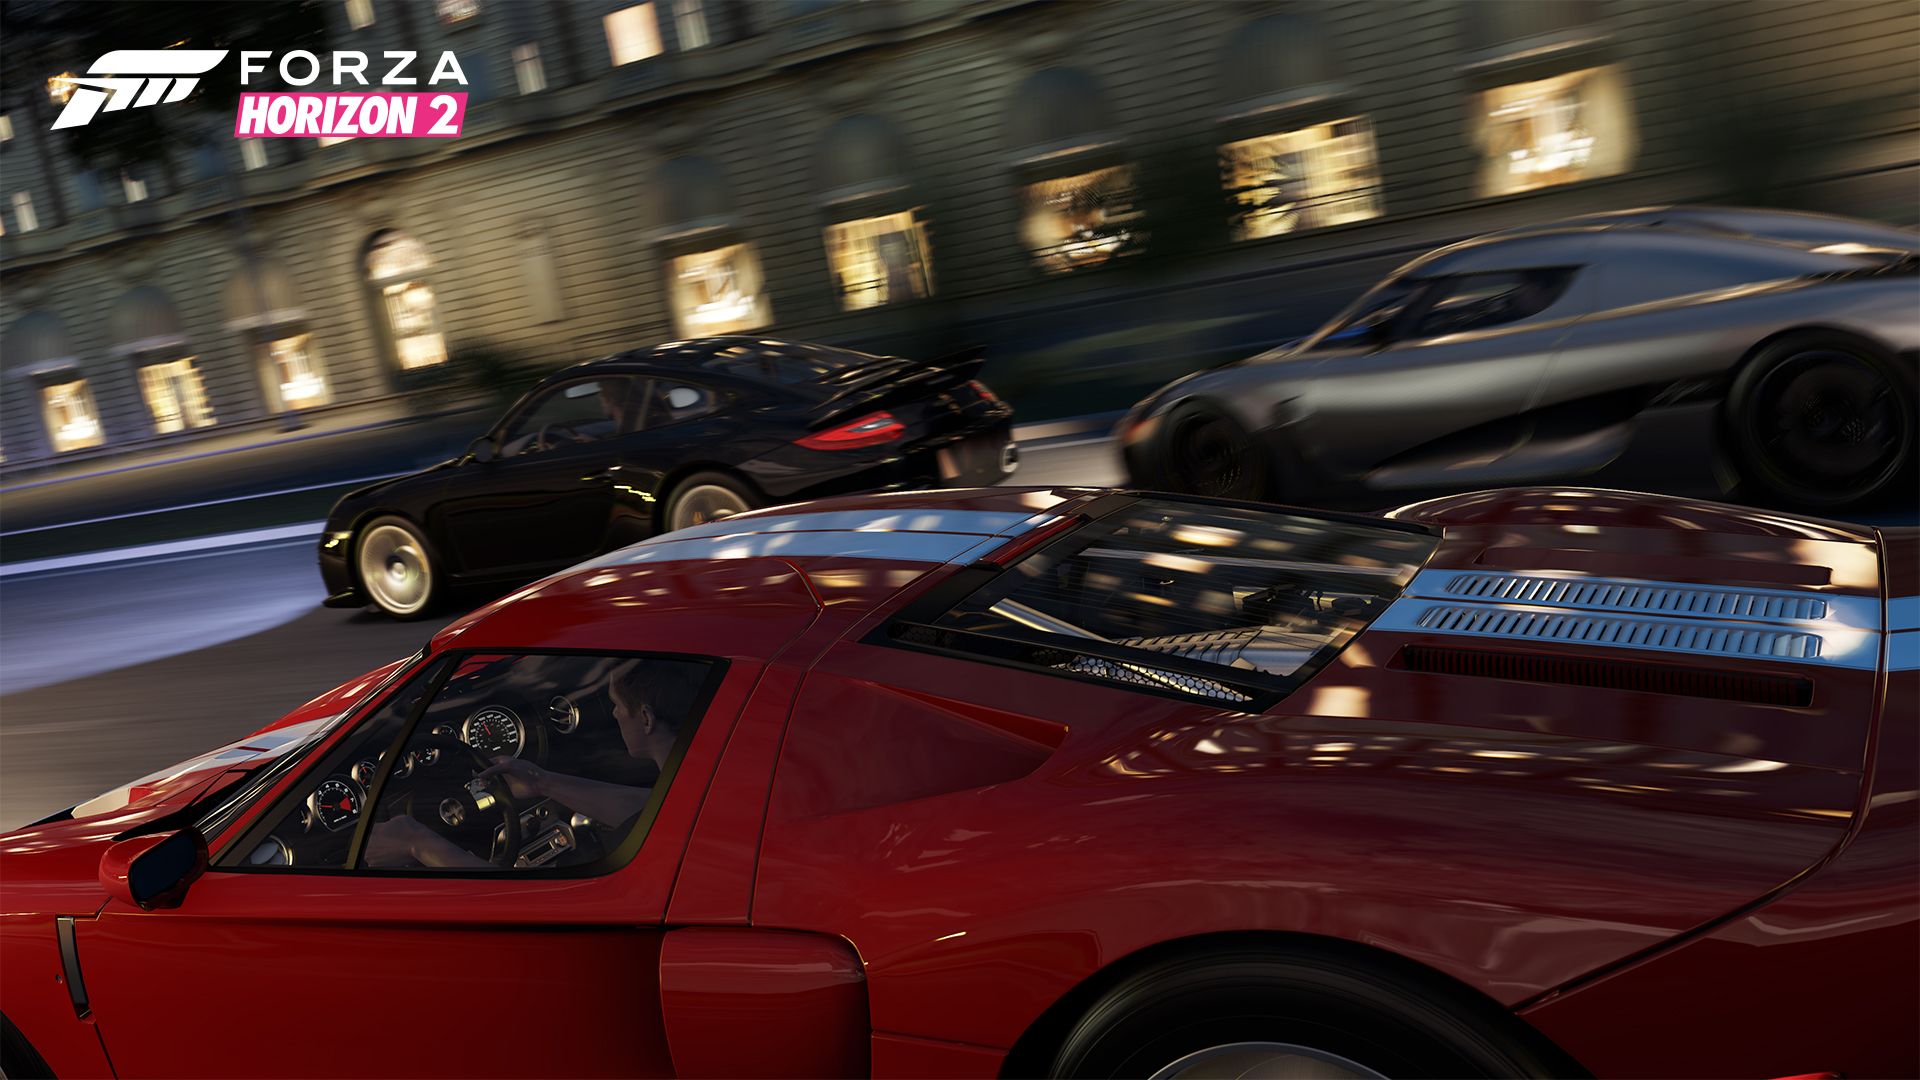 Reviews_02_WM_ForzaHorizon2